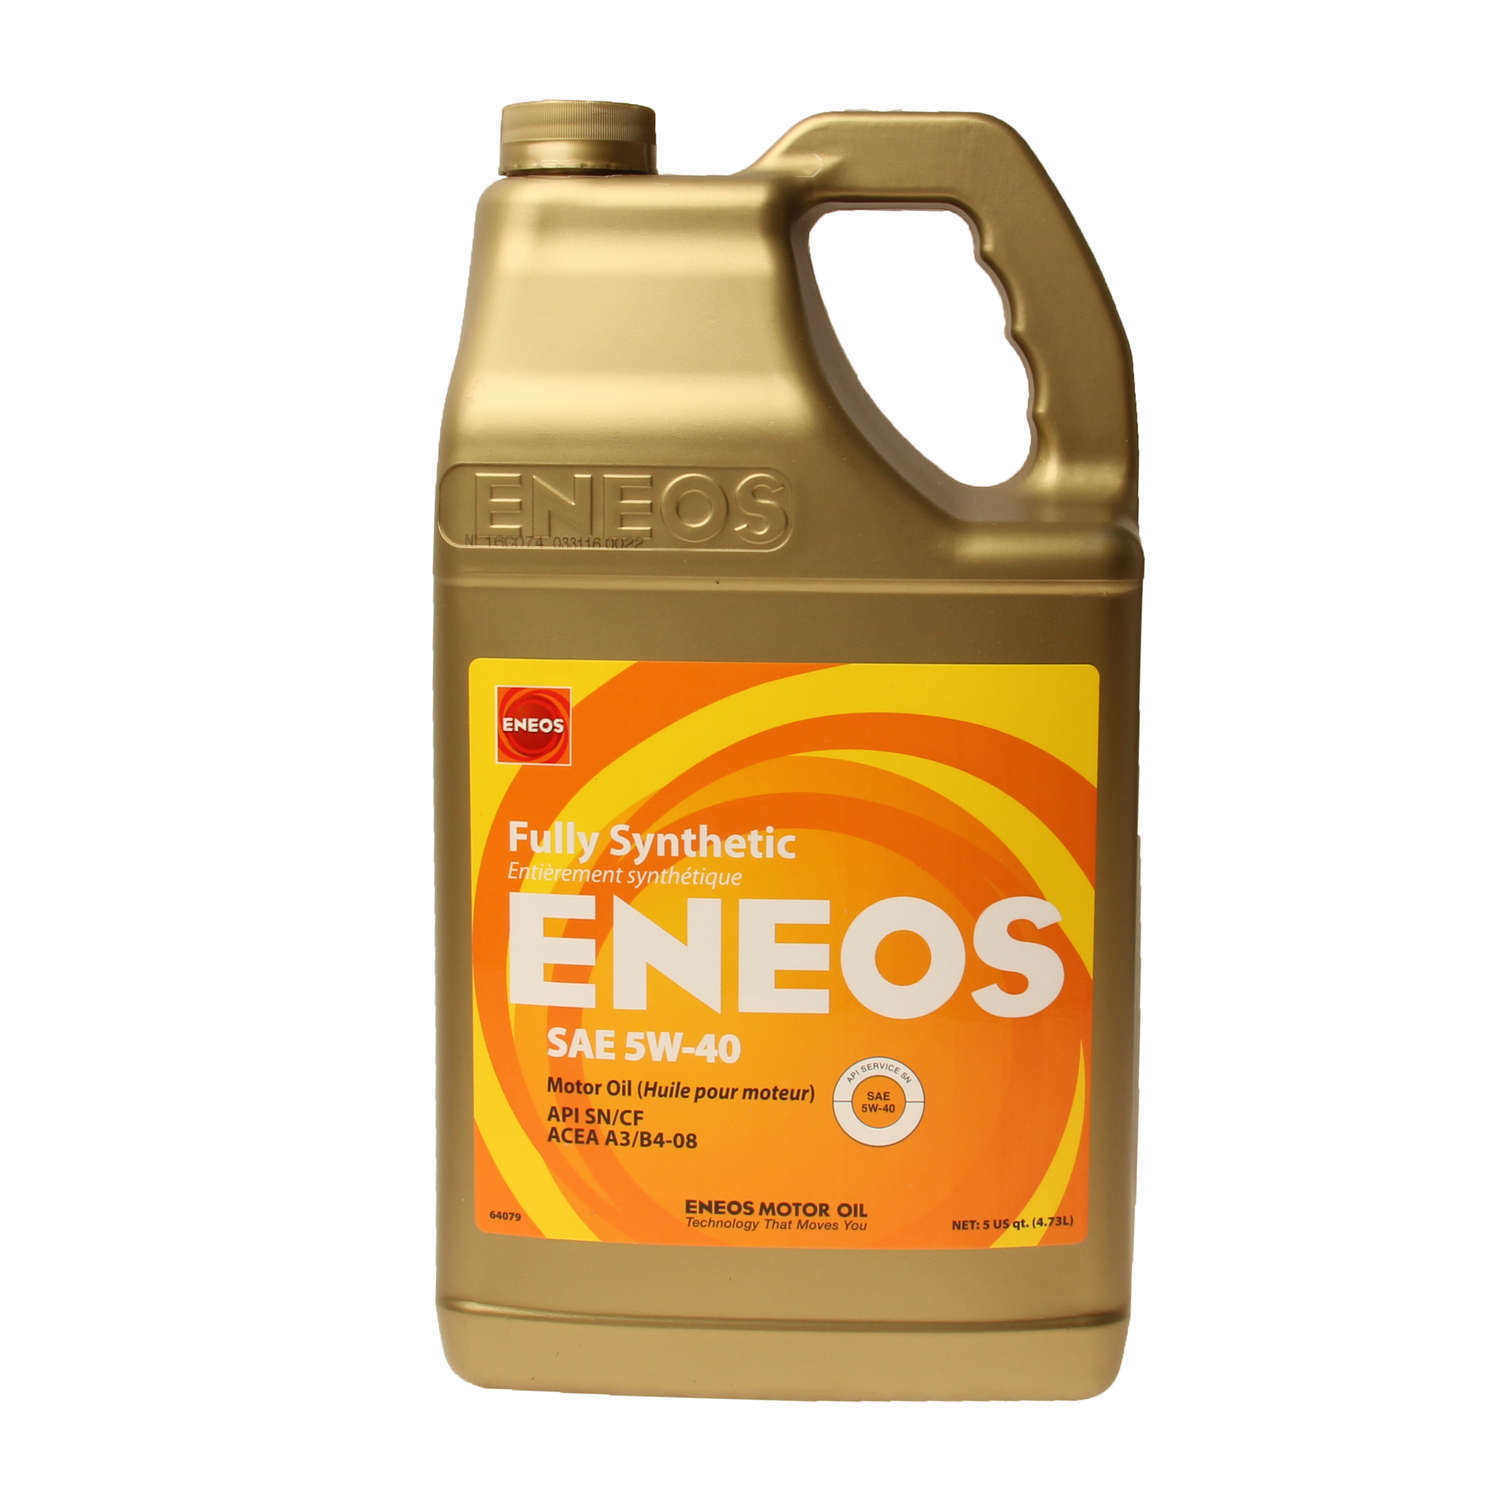 eneos 5w 40 european formula fully synthetic engine motor. Black Bedroom Furniture Sets. Home Design Ideas